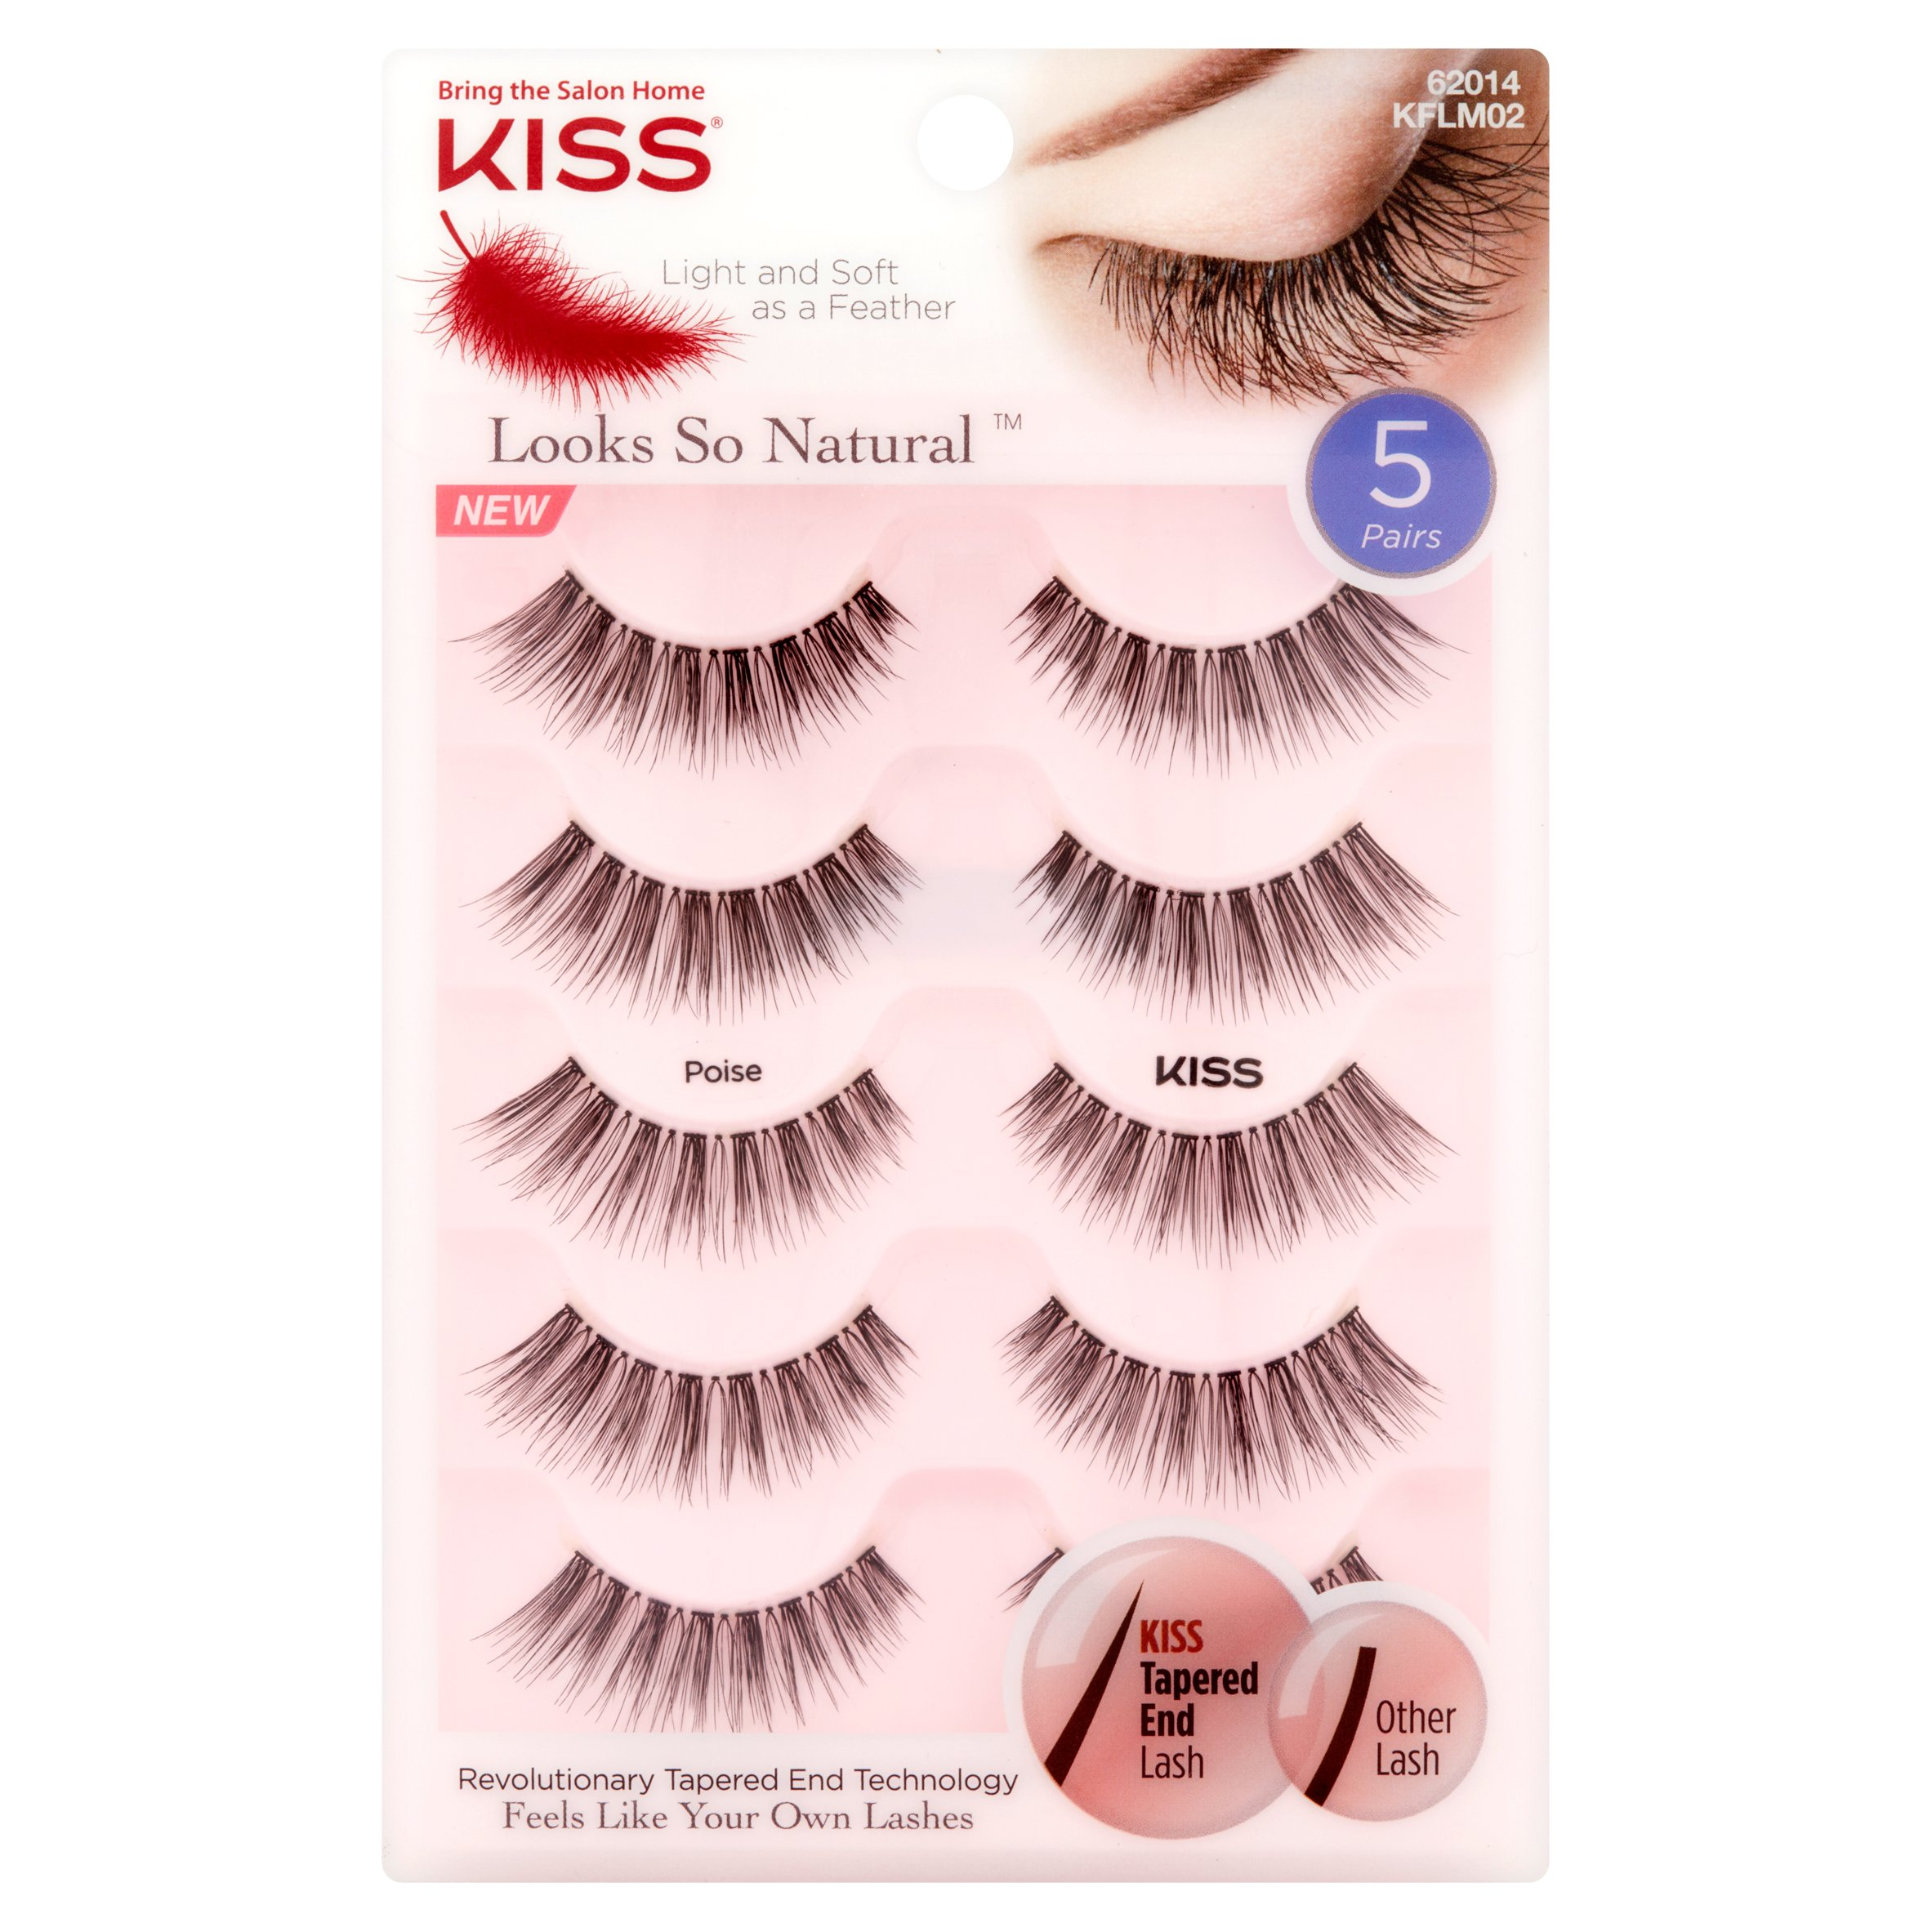 KISS Looks So Natural False Eyelashes Poise 5 Pairs - Walmart.com